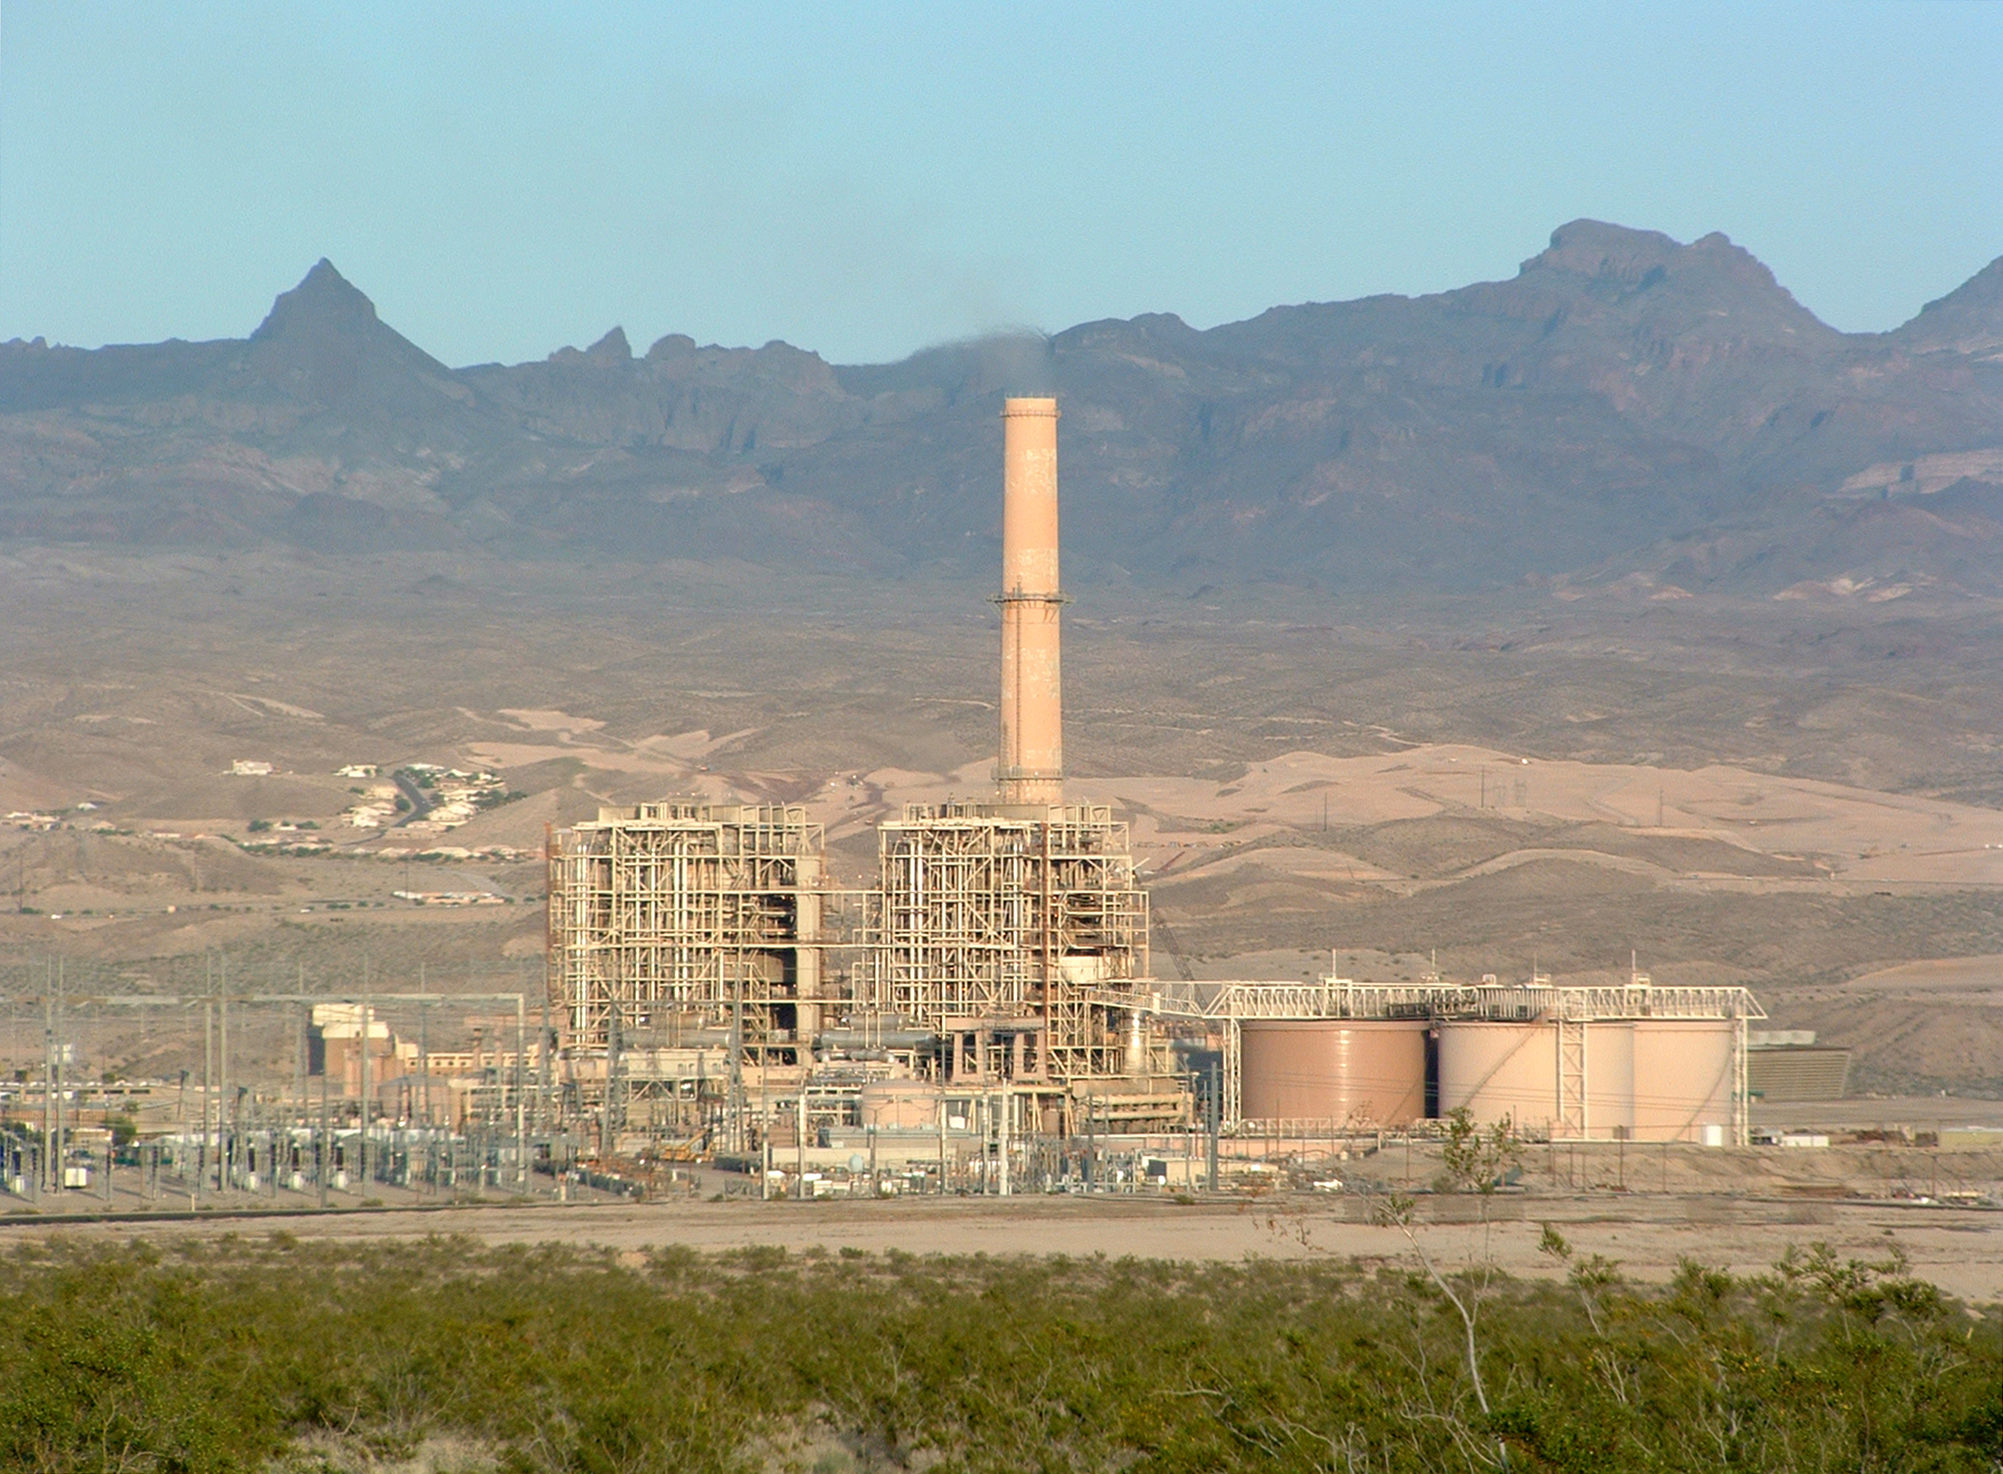 Mohave Power Station - Wikipedia